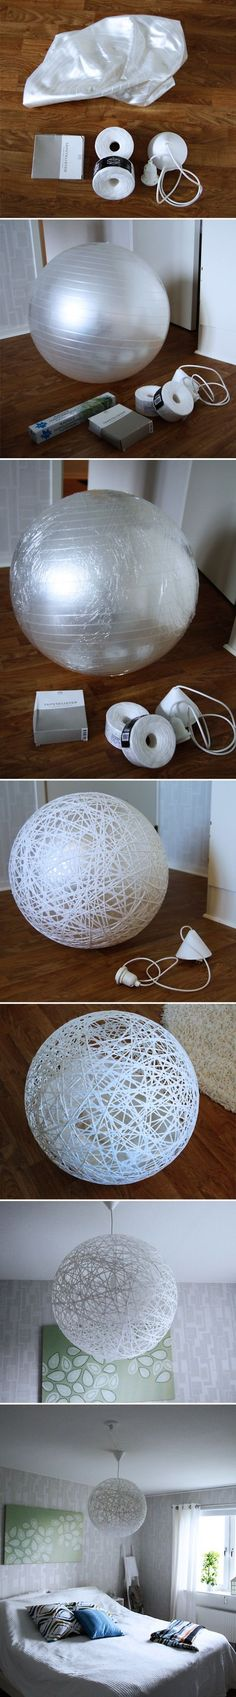 Perhaps I can DIY this to the ceiling fan with the blades removed in the kitchen with a giant yoga ball